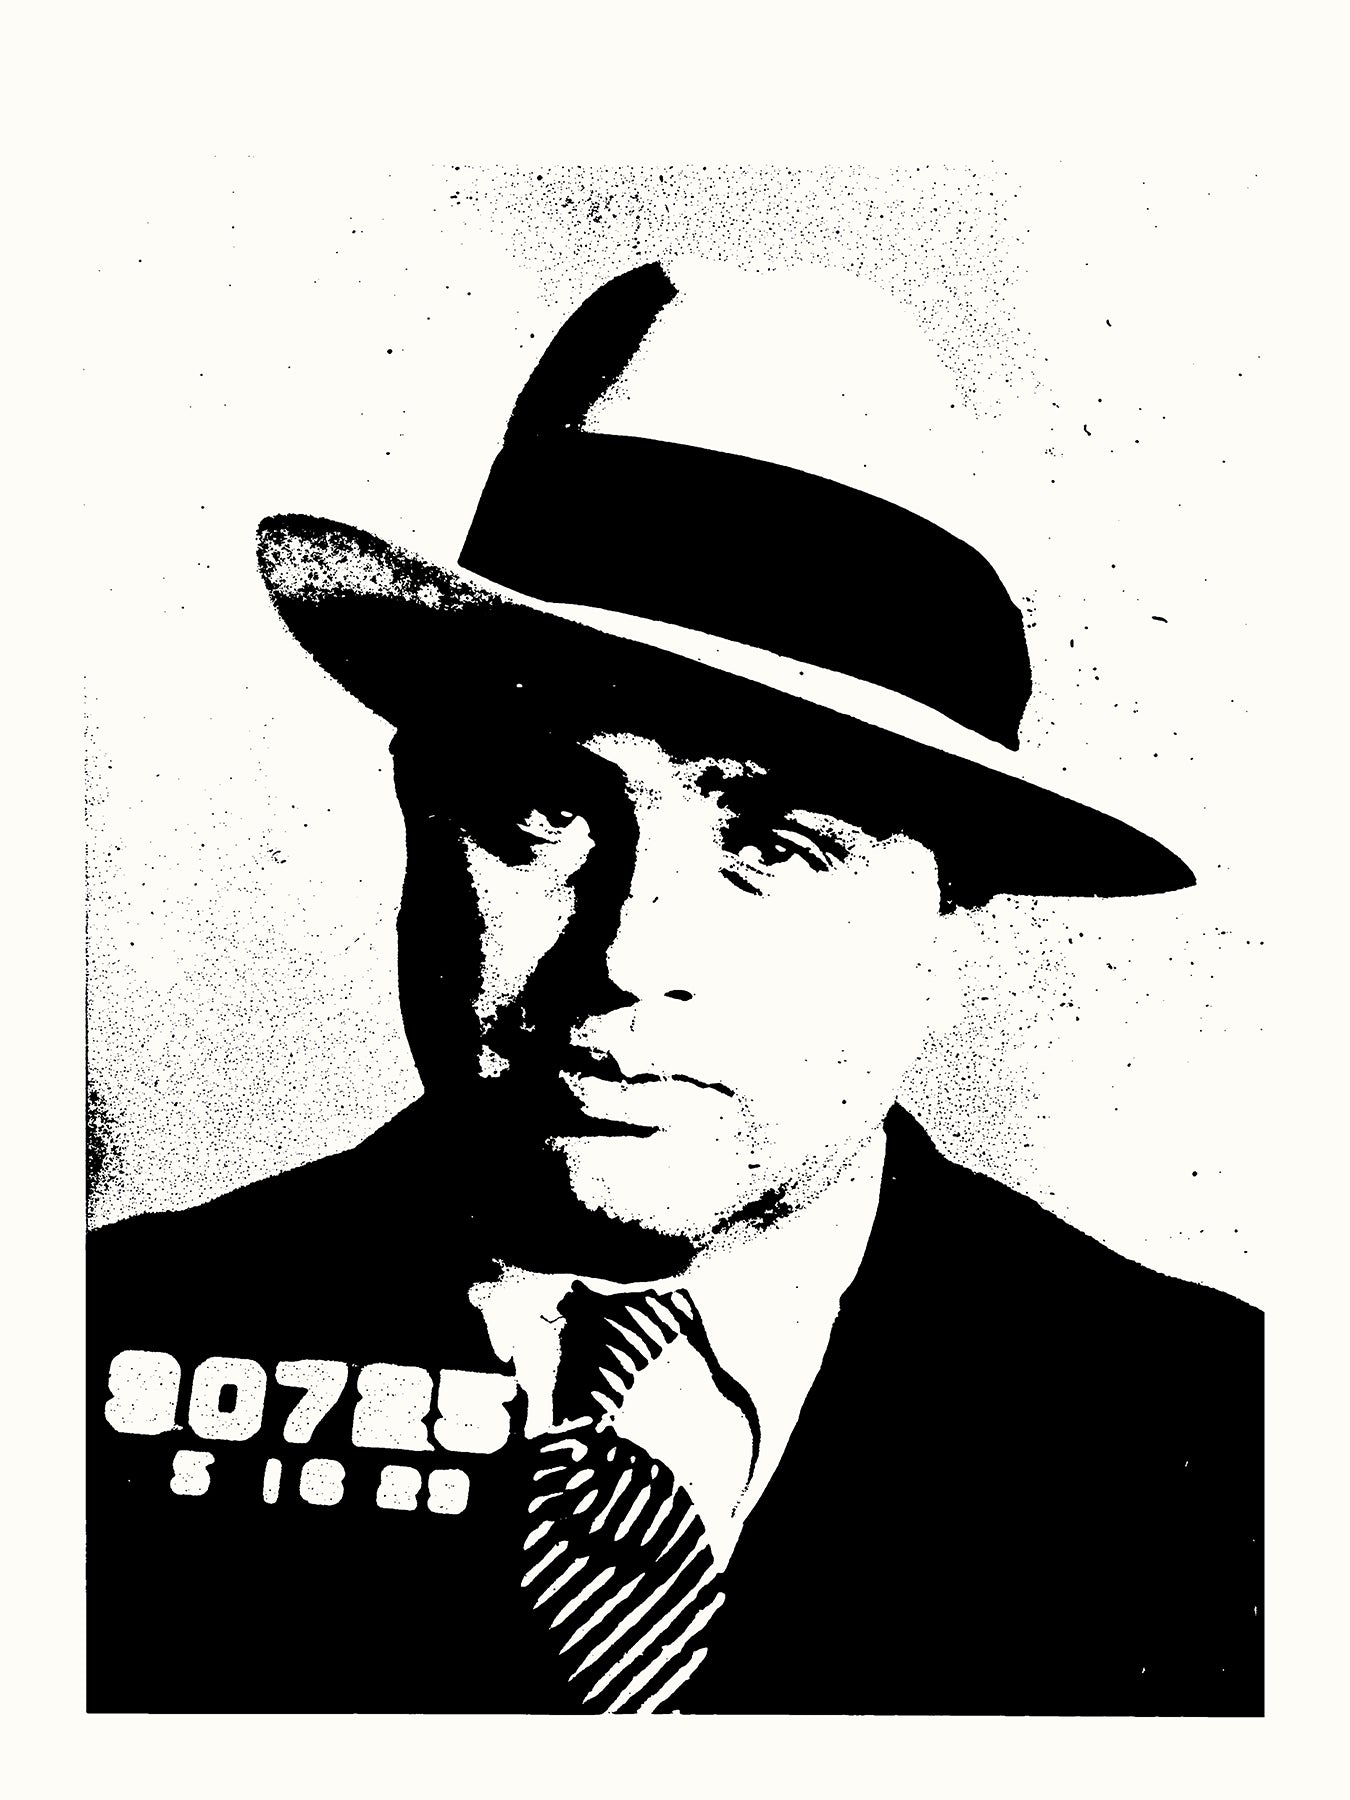 Al Capone // Loaded Guns 2 Exclusive Print by Blunt Graffix